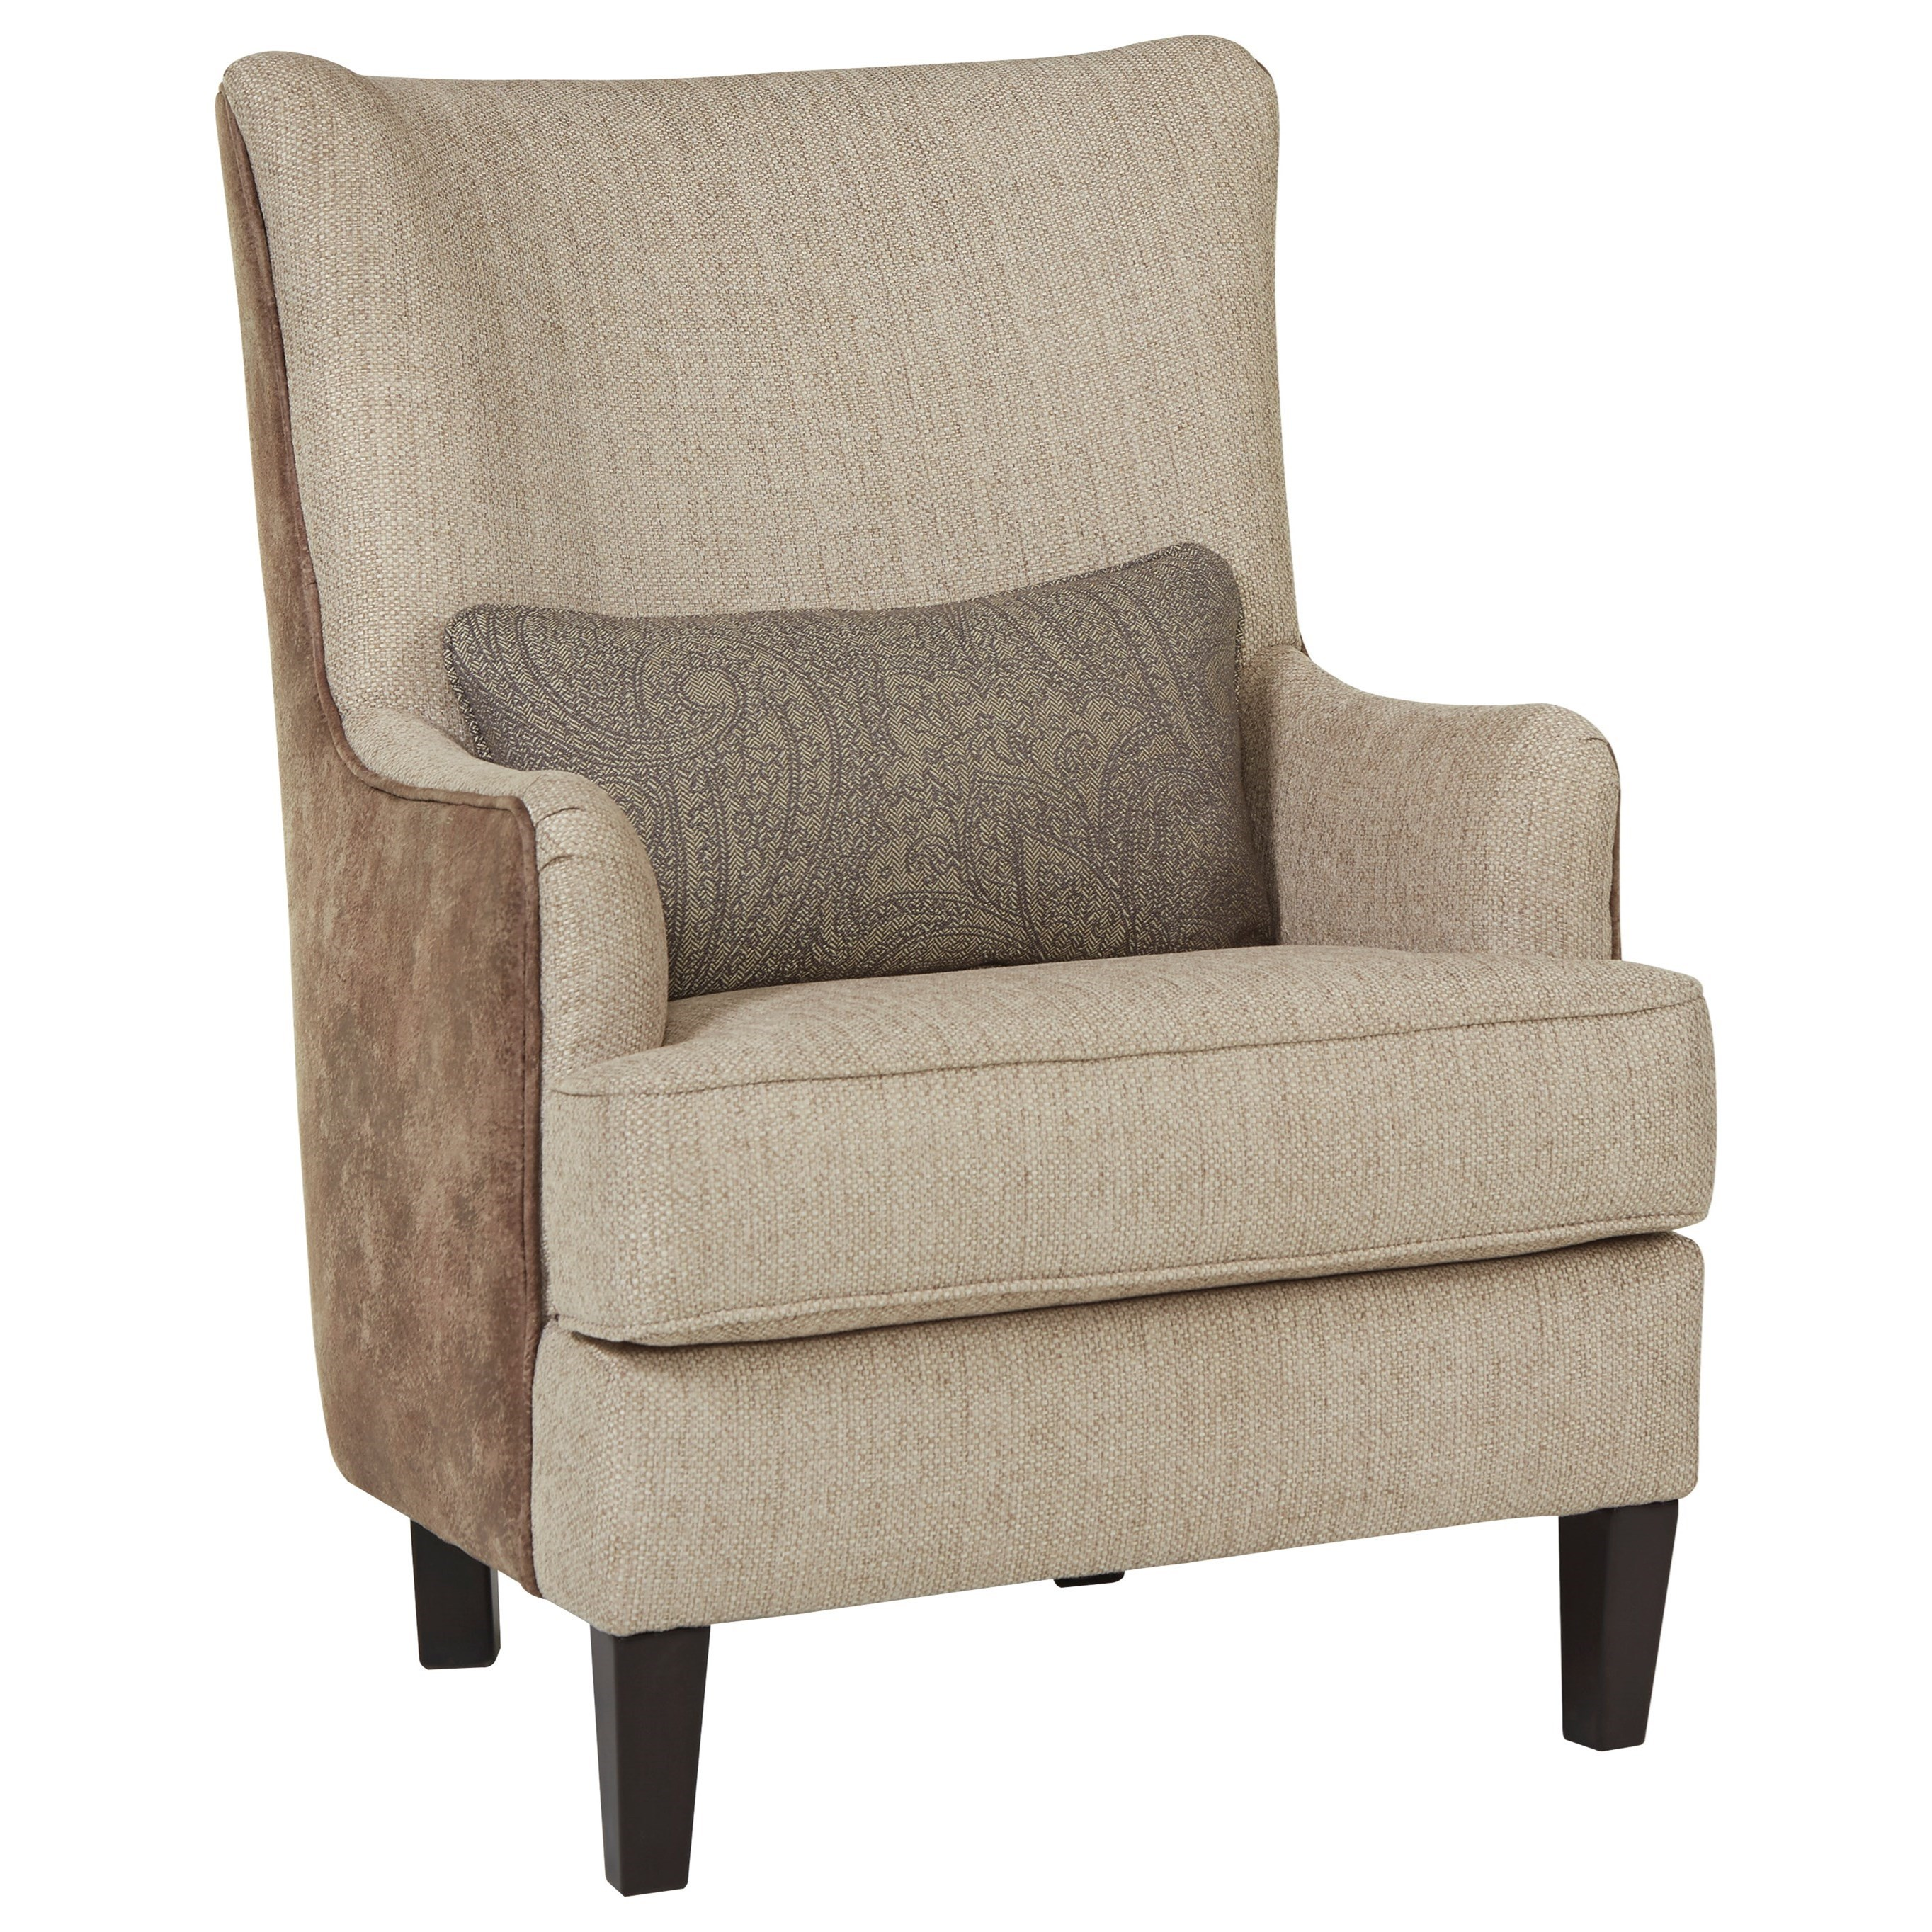 wing back accent chairs millennium baxley modern wing back accent chair with 22164 | products%2Fmillennium%2Fcolor%2Fbaxley 41101 4110121 b1